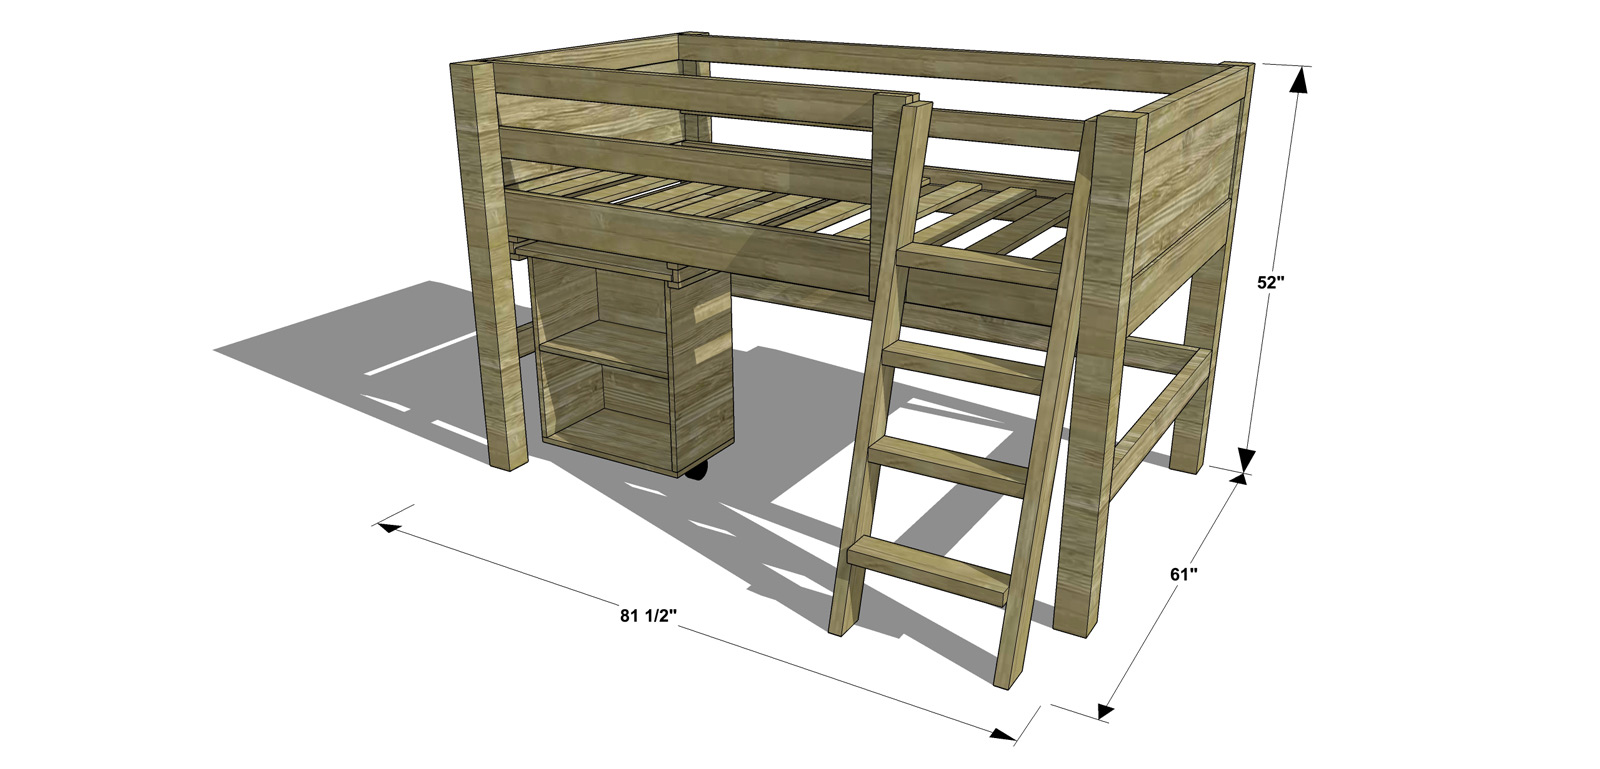 Fresh Dimensions for The Design Confidential Free DIY Furniture Plans How to Build a Twin